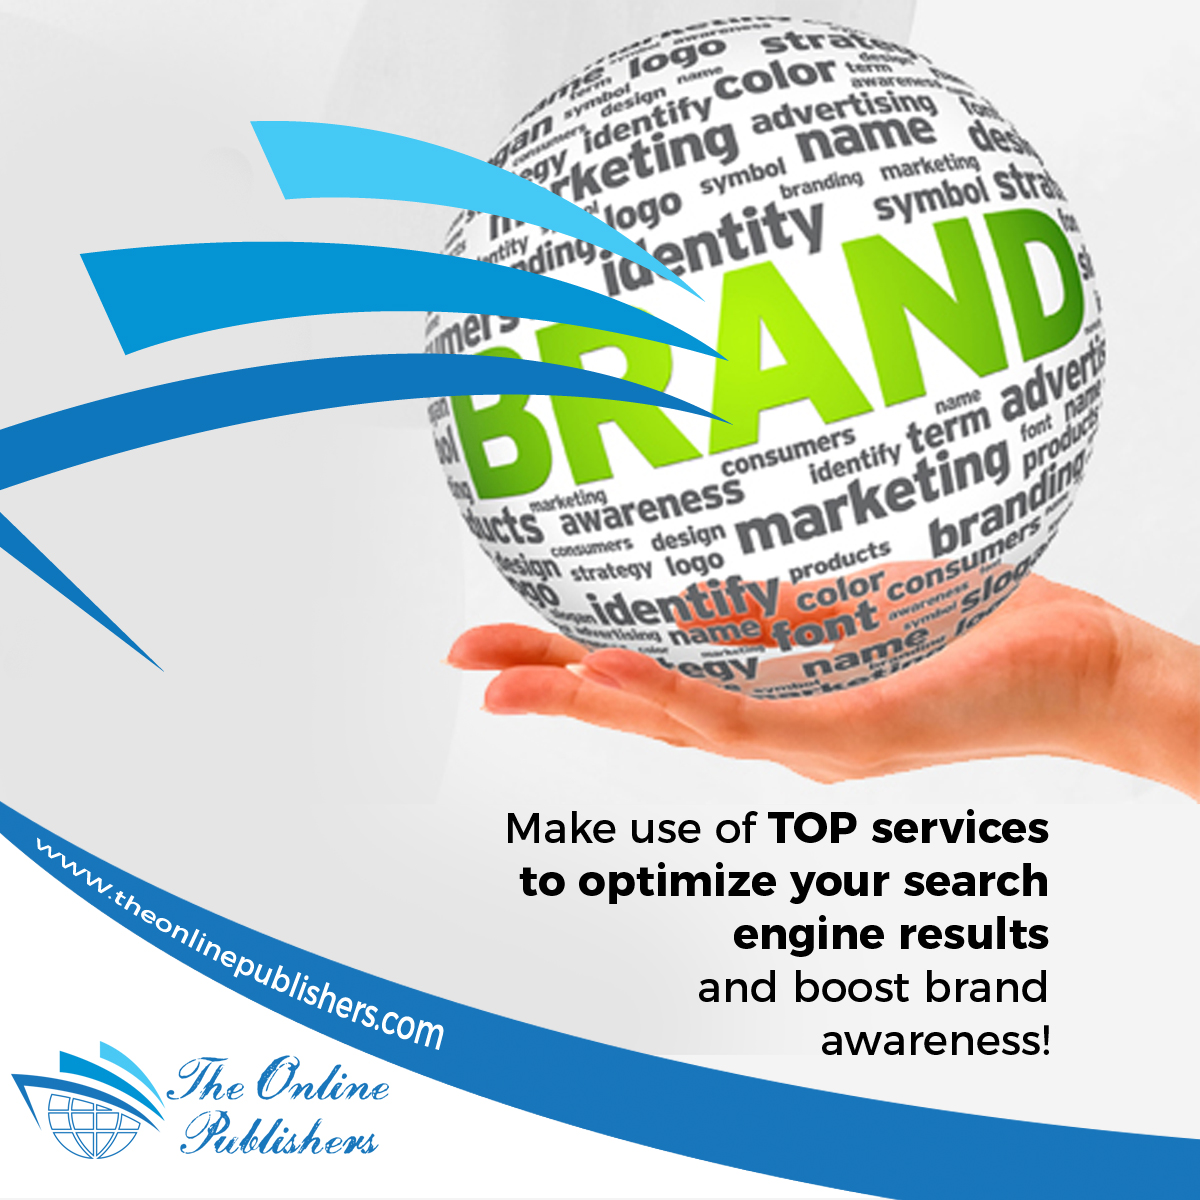 Why do you need the services of a top digital marketing agency?